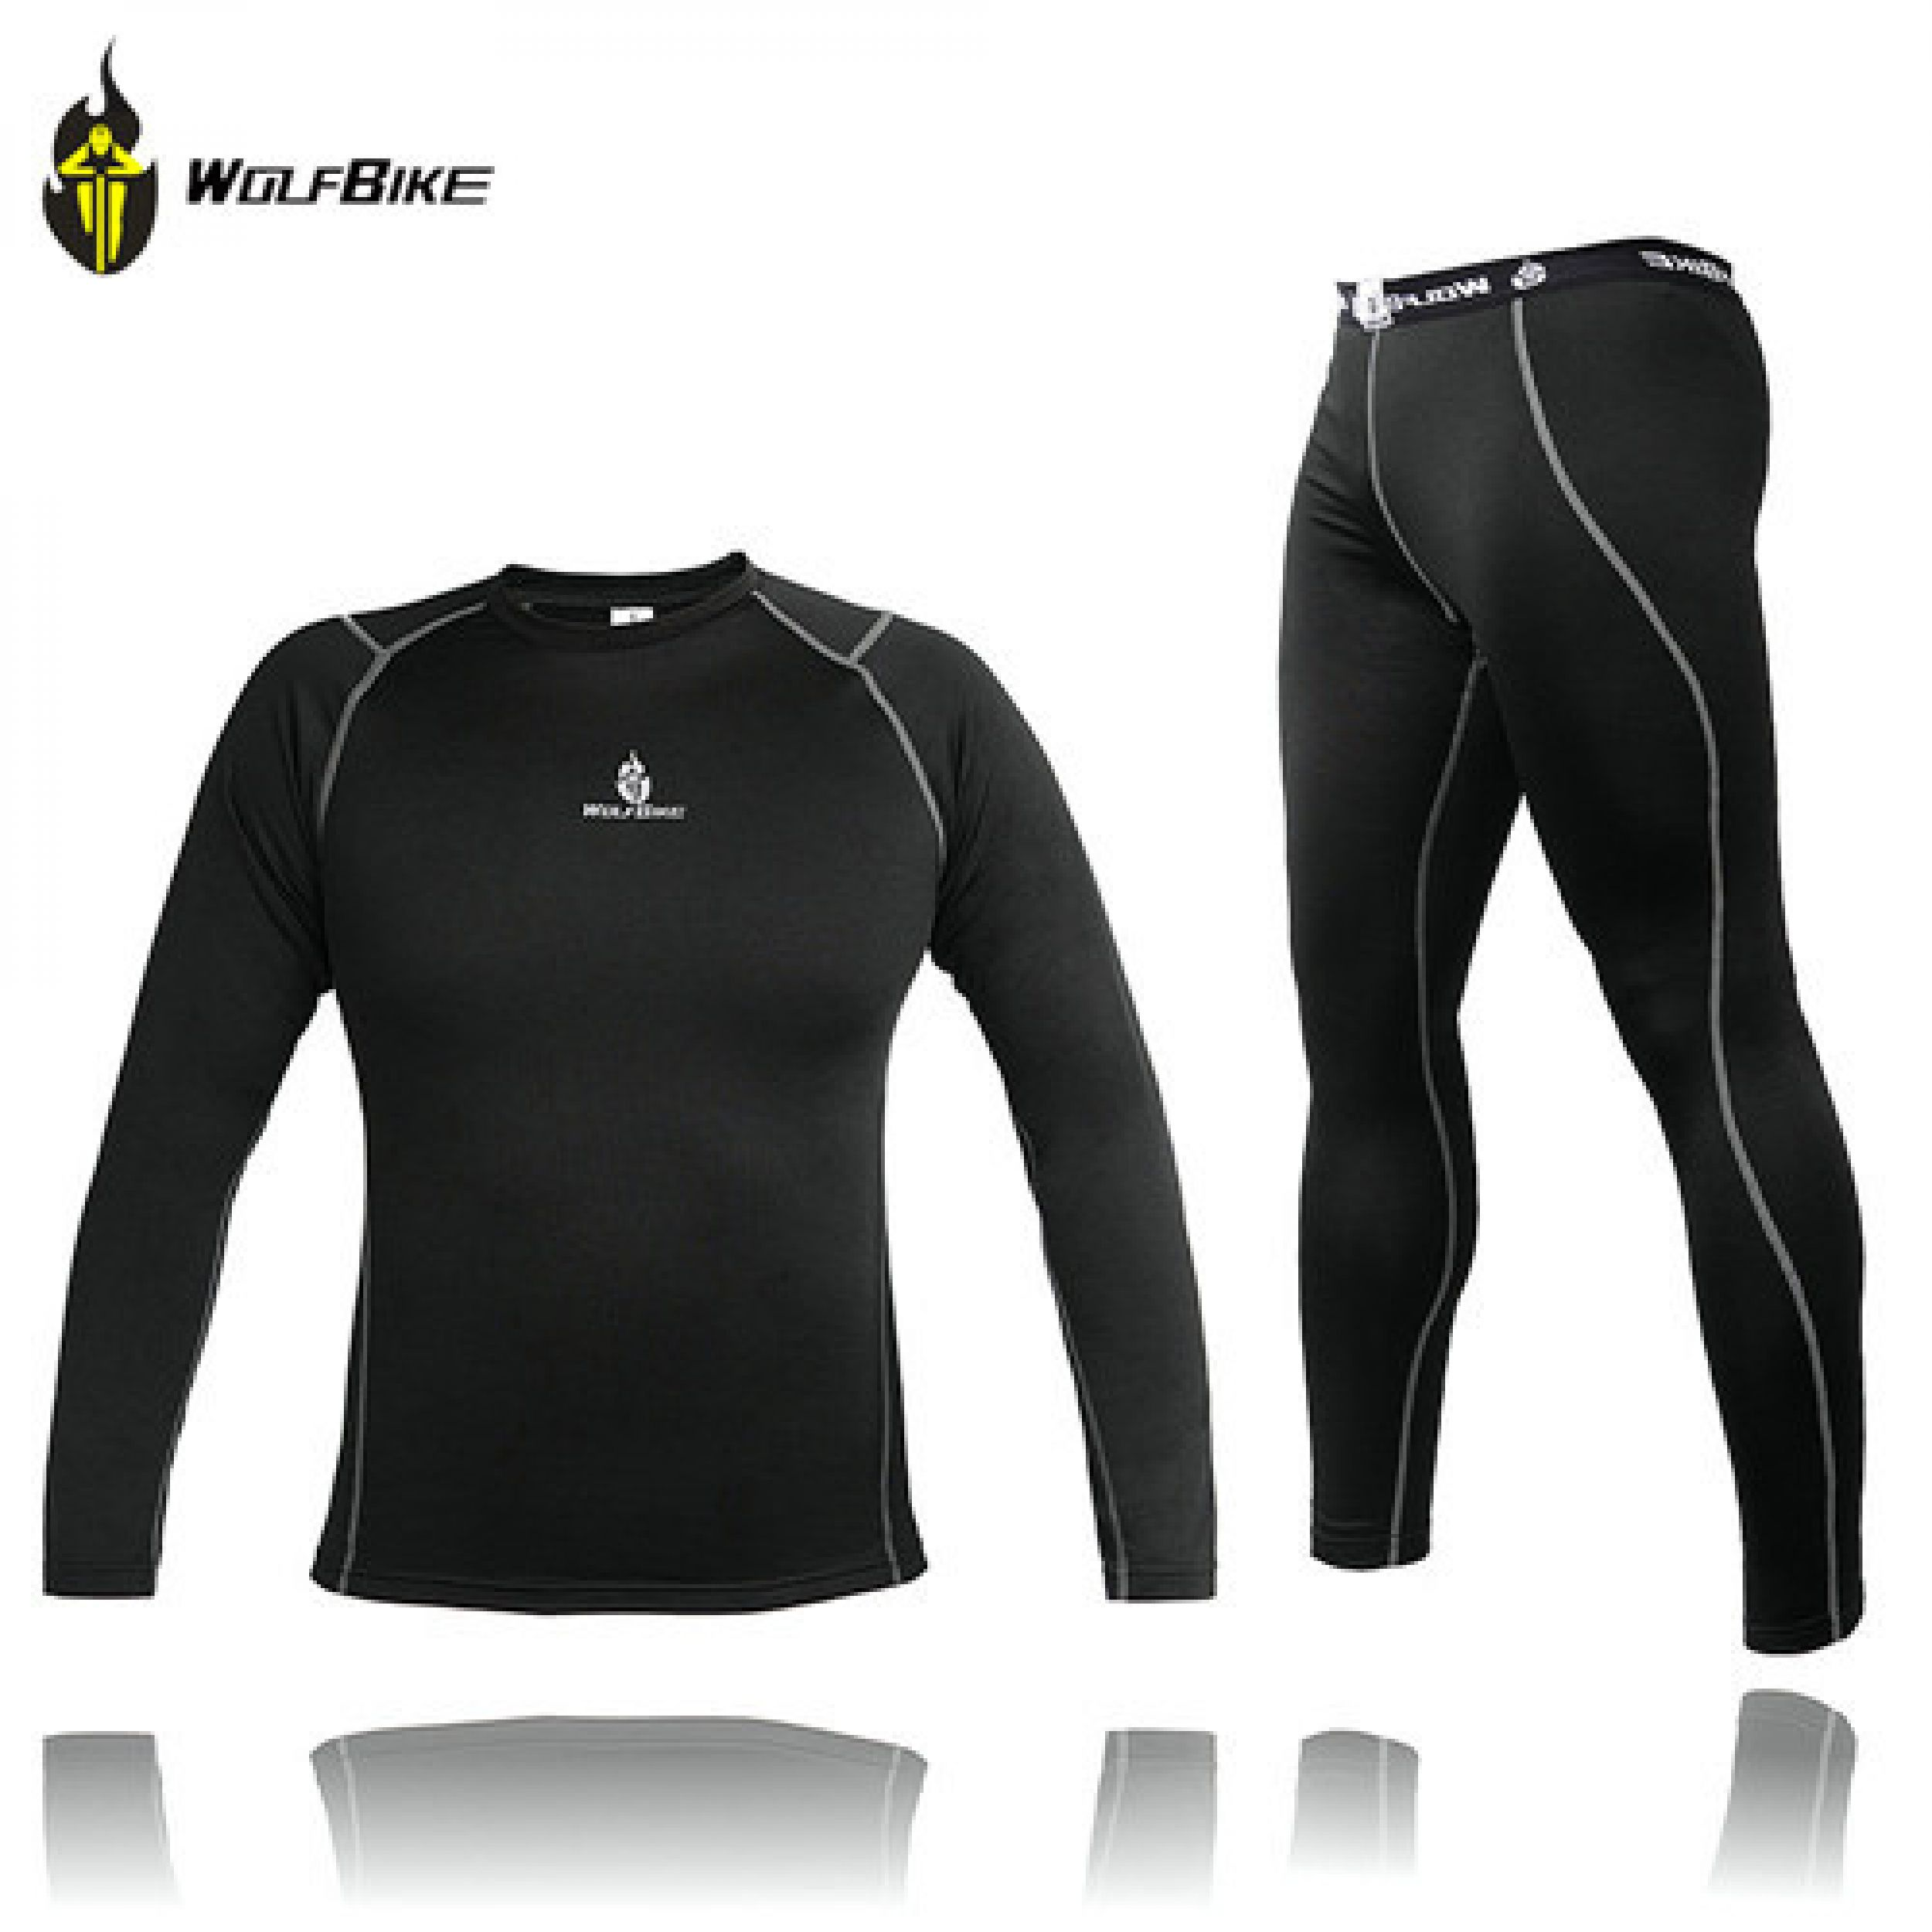 WOLFBIKE-Men-Thermal-Fleece-Base-Layer-Compression-Under-Wear-Cycling-Bike-Long-Sleeve-Shirts-Pants-Winter.jpg